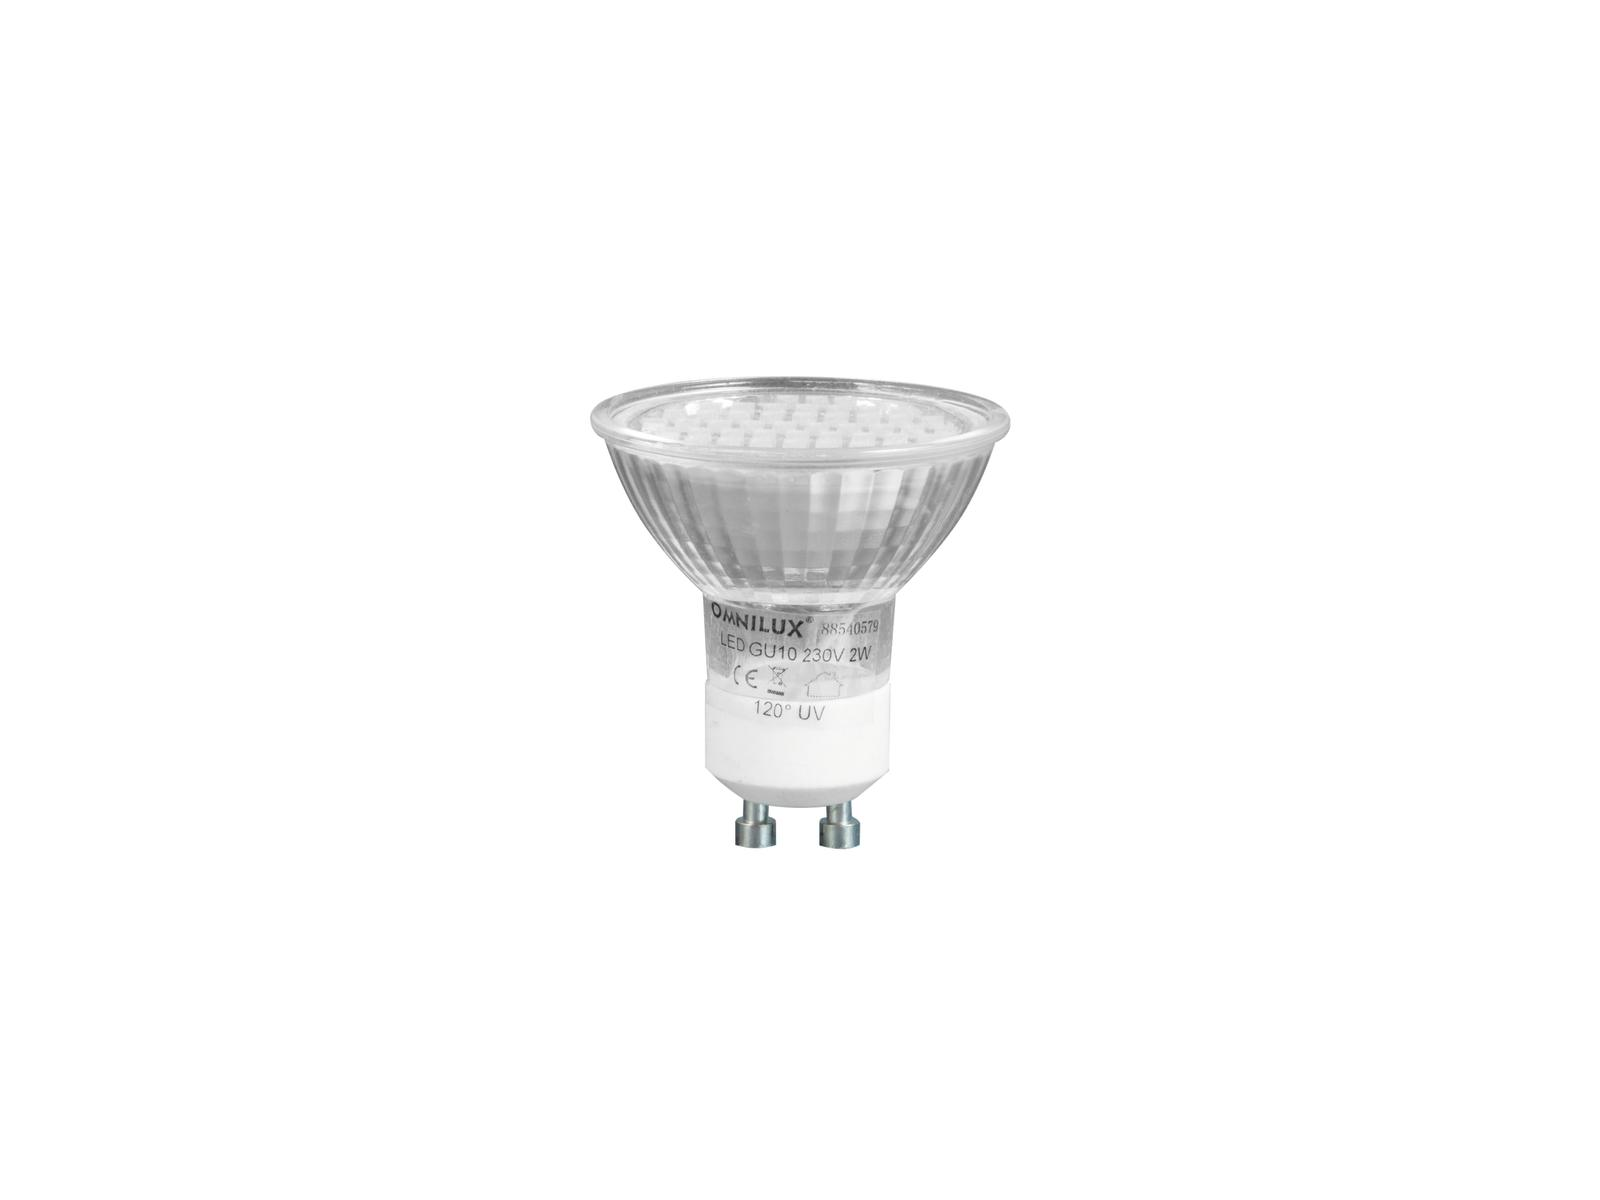 OMNILUX GU-10 230V 48 LED UV active